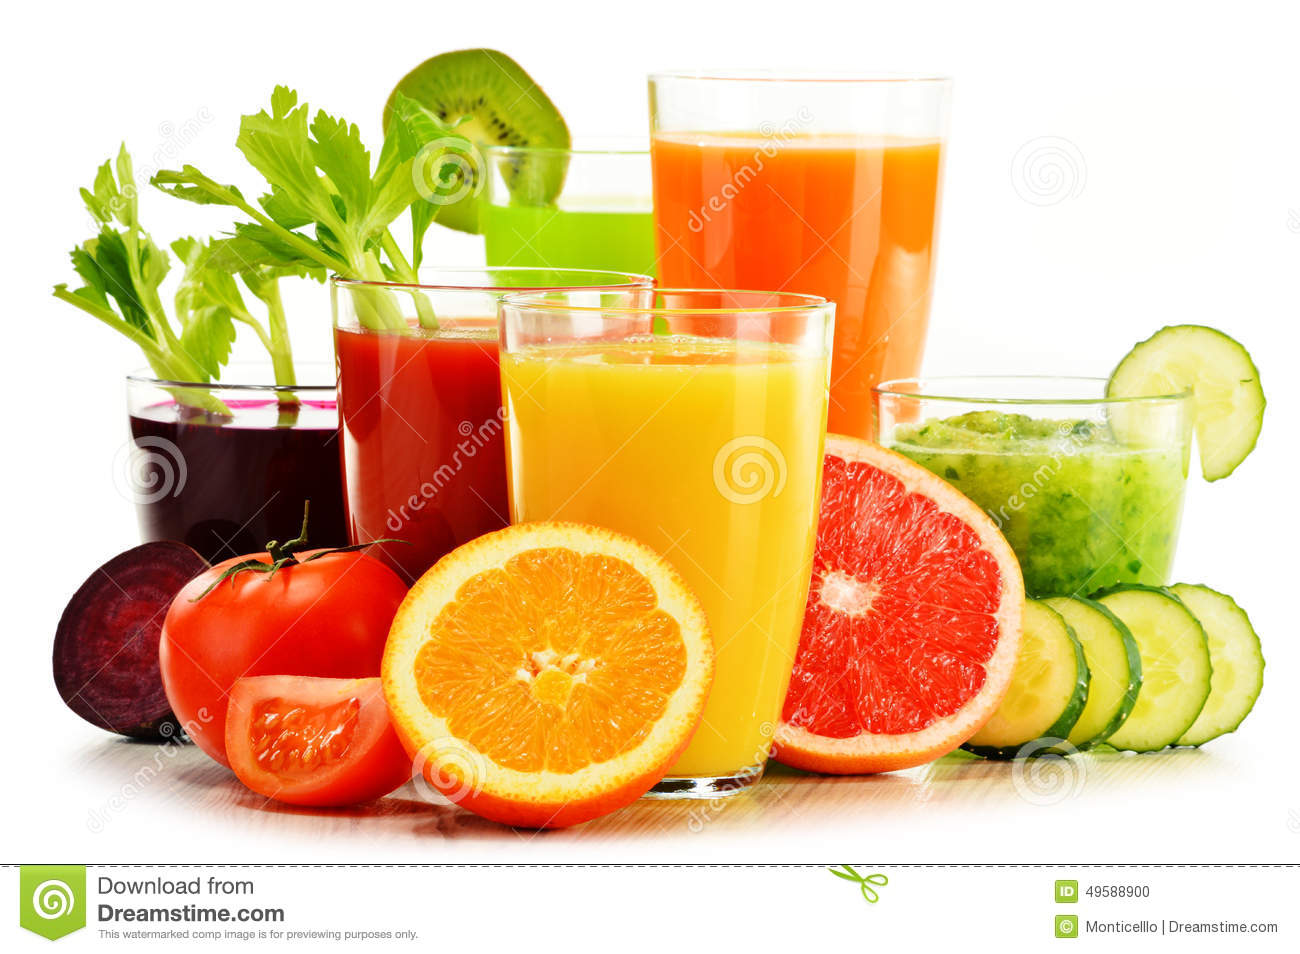 Ways to reduce belly fat naturally image 2